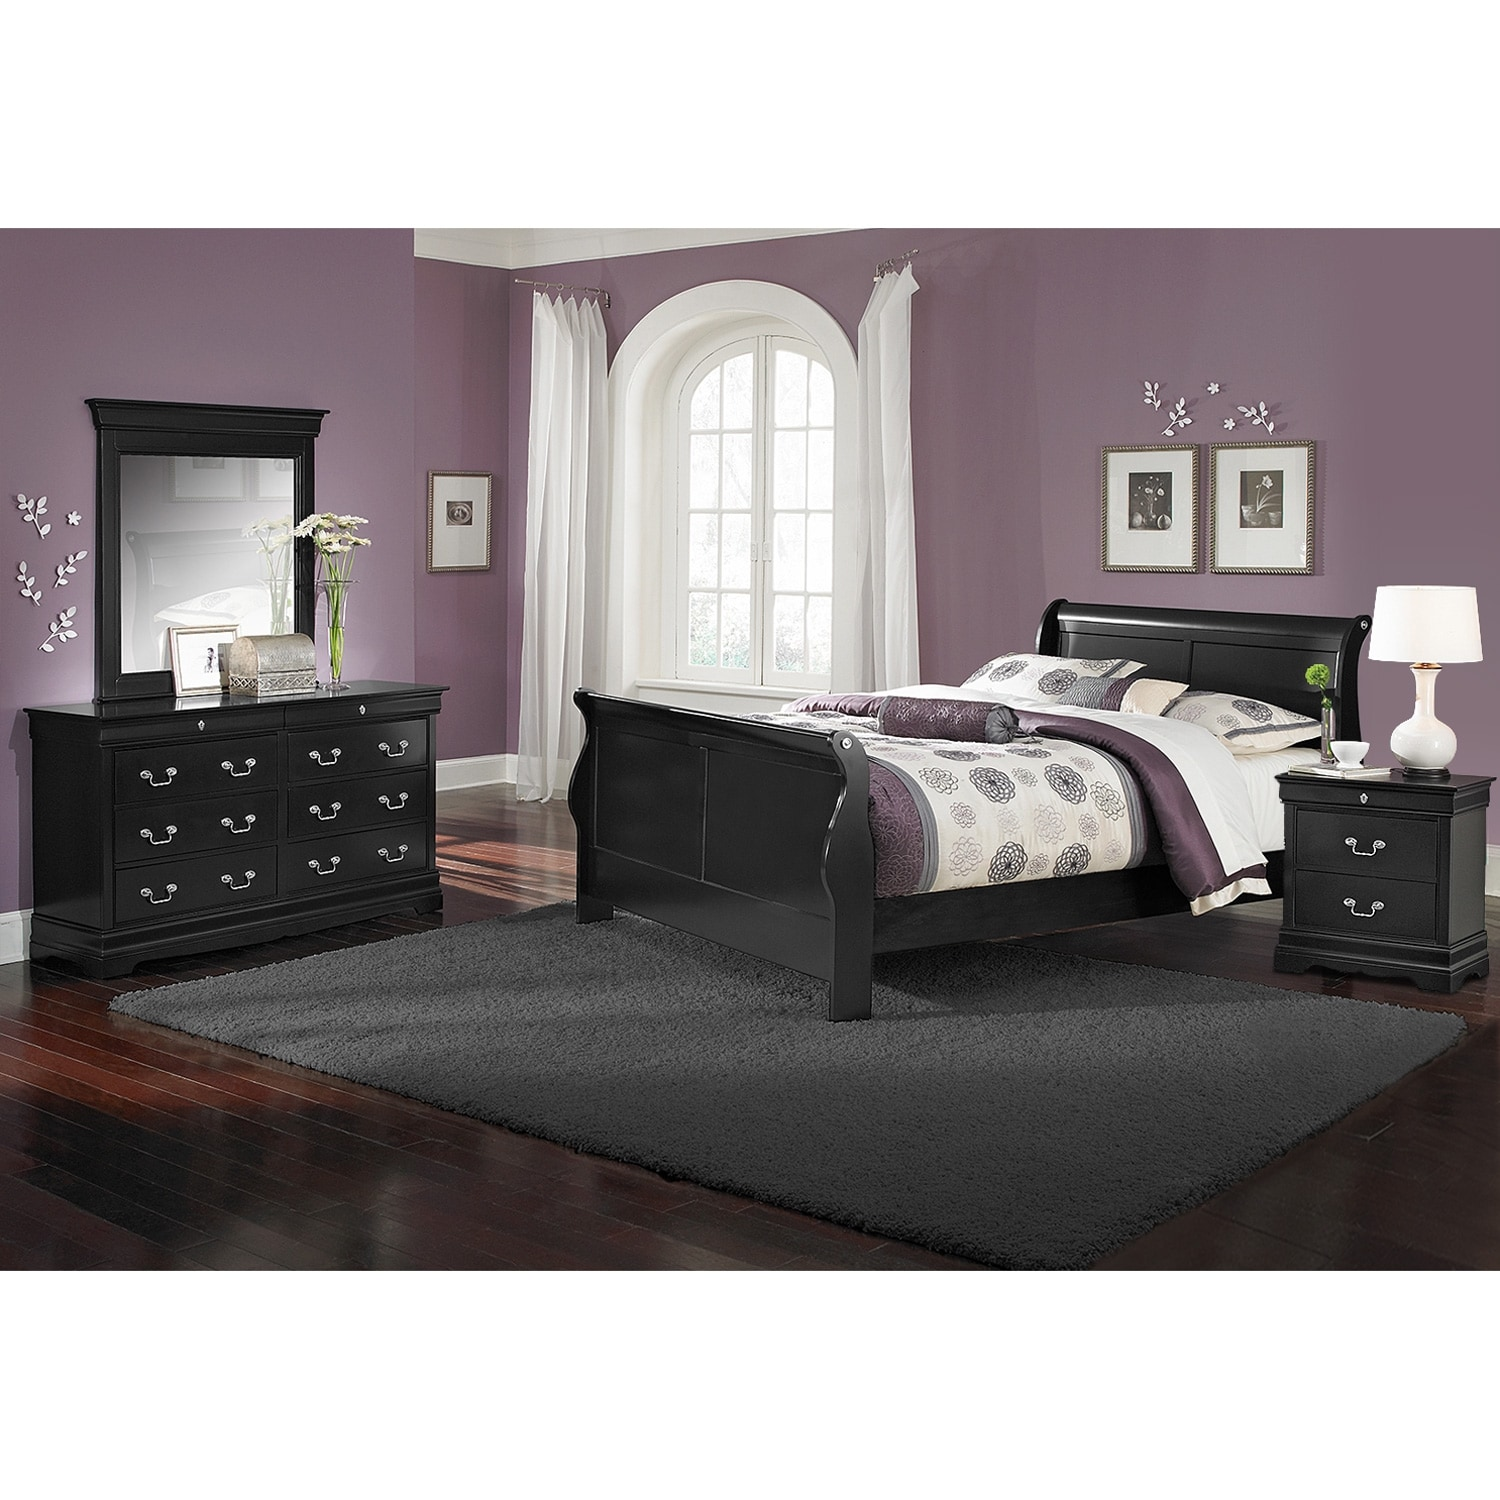 Kids Furniture - Neo Classic Youth 6-Piece Twin Bedroom Set- Black